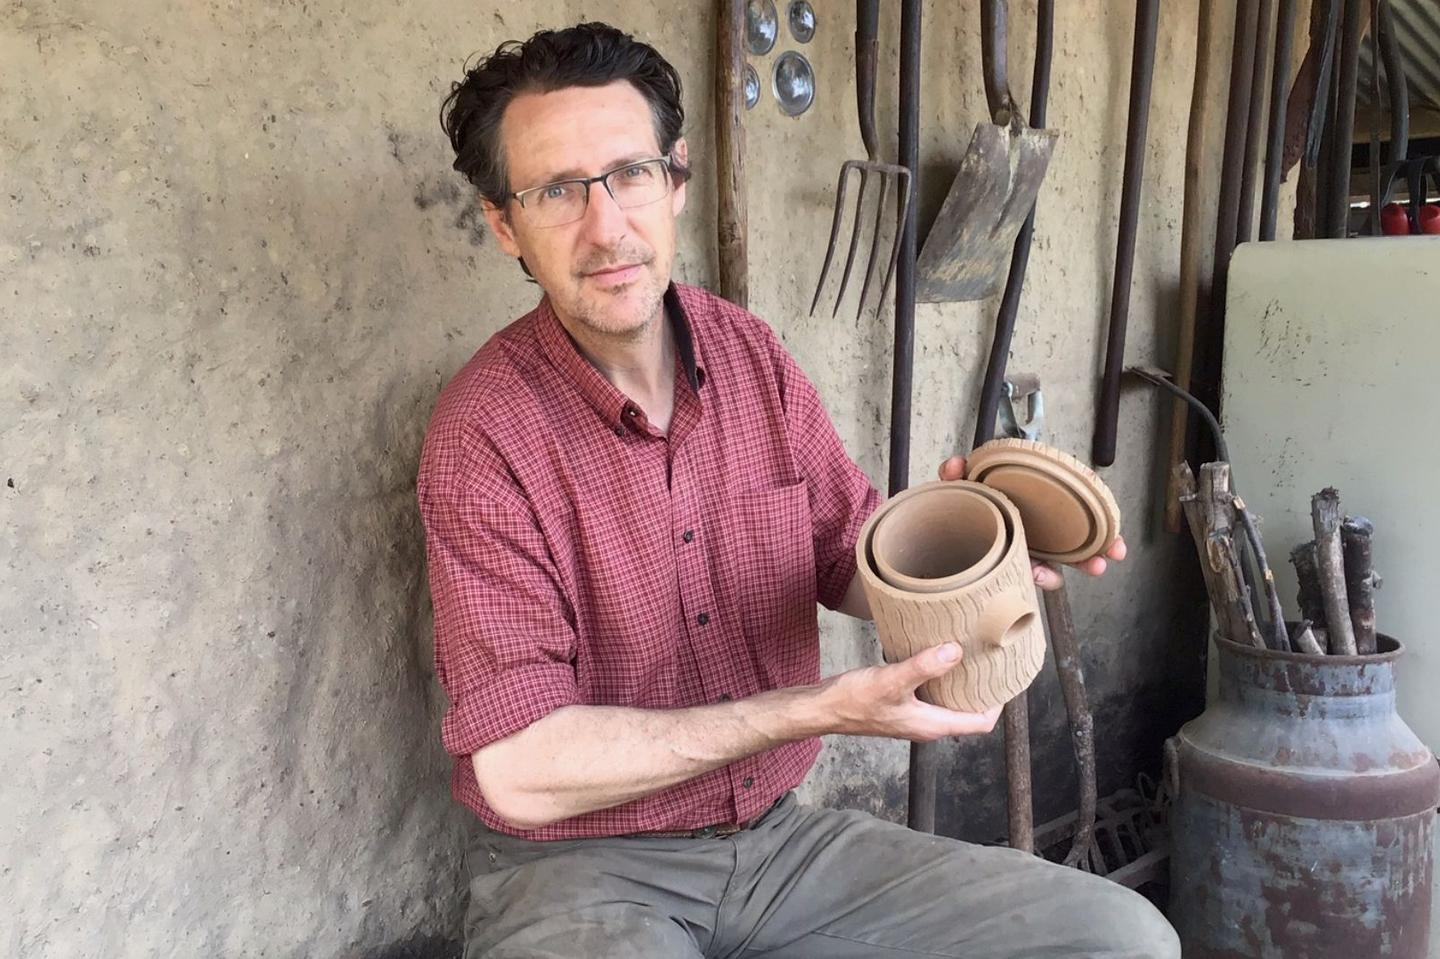 Prof. David Watson with one of the tree-hollow nesting boxes